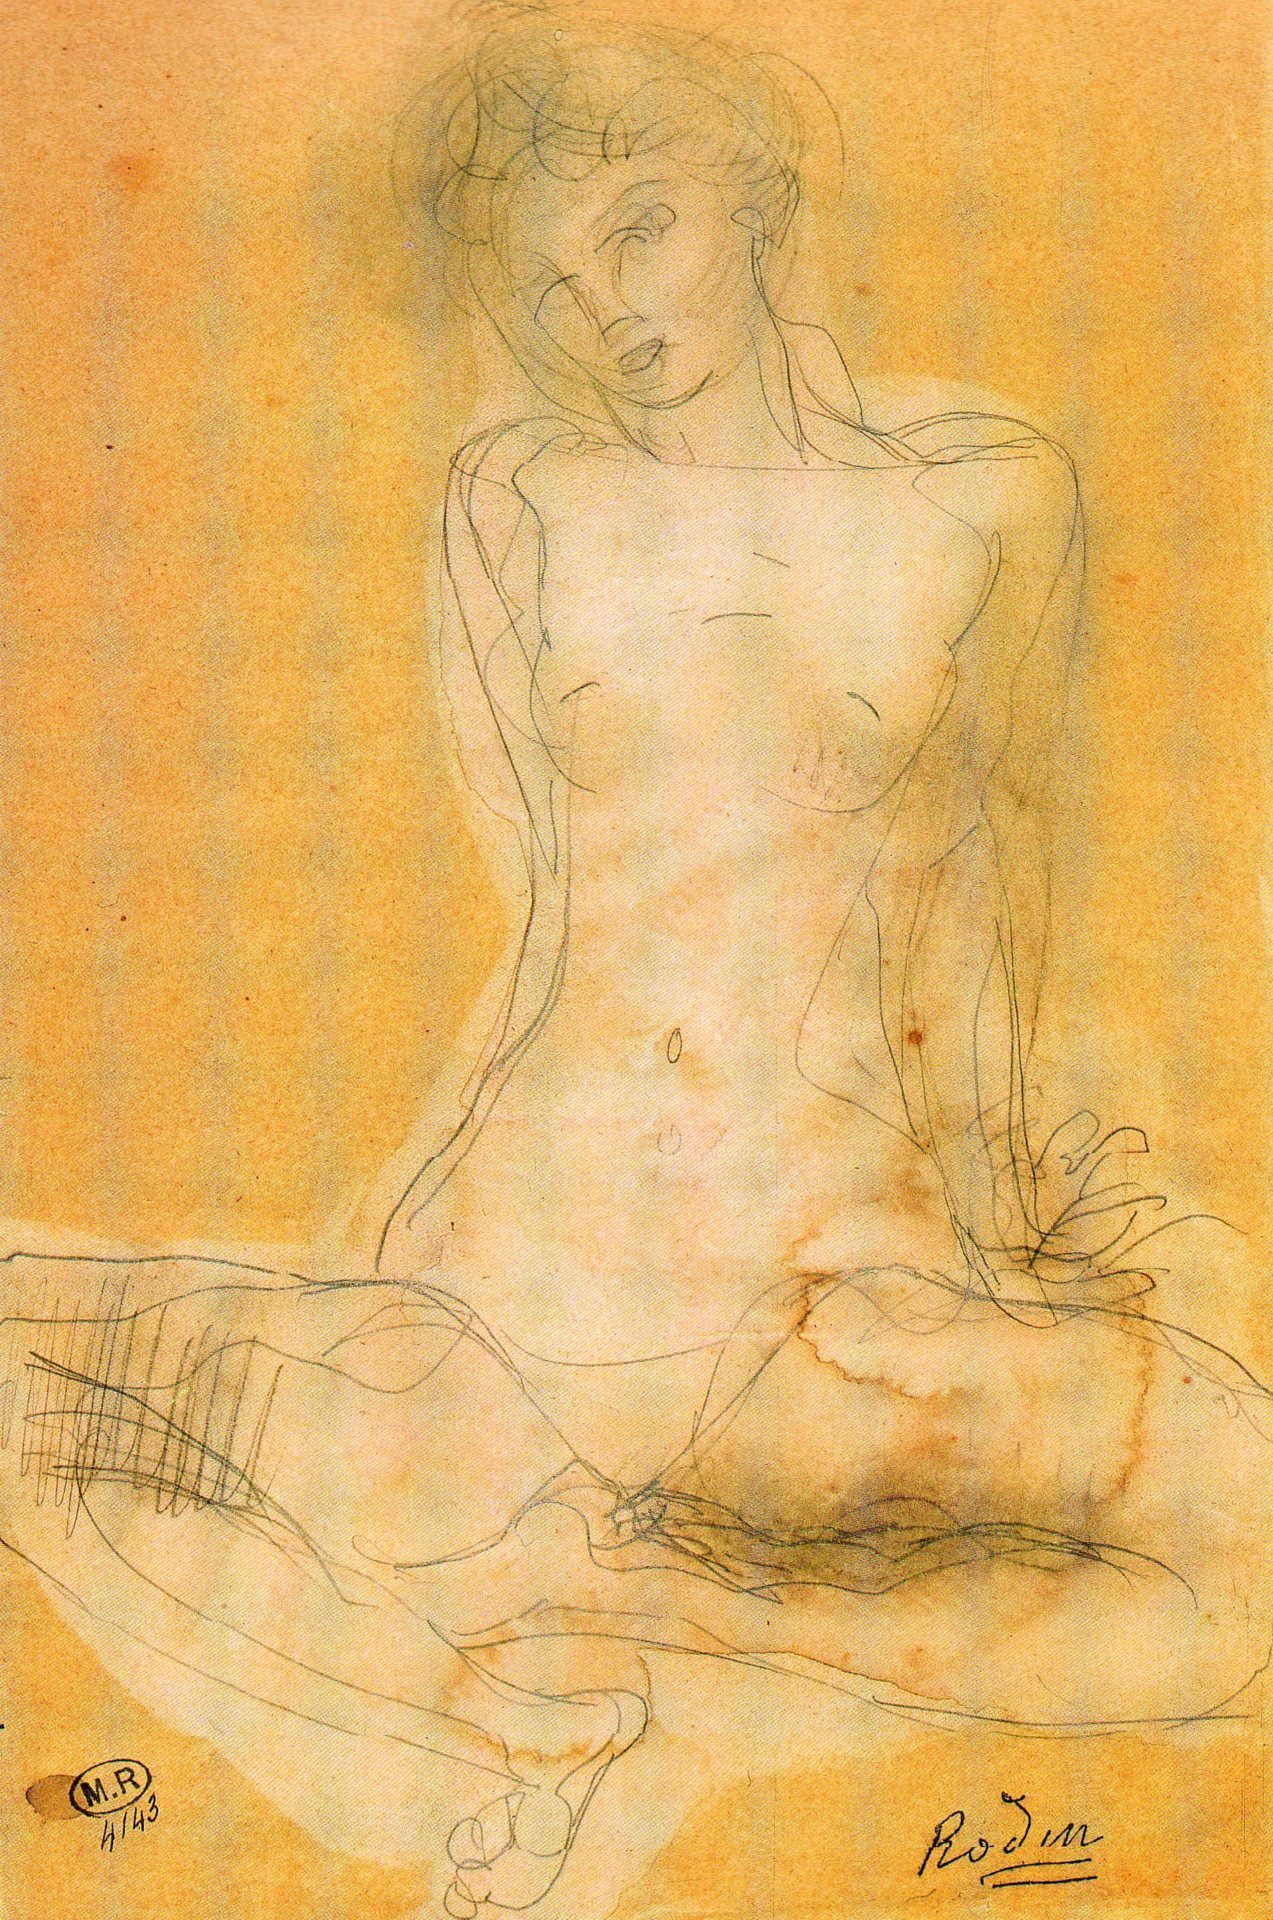 Auguste Rodin, Seated Woman, Watercolour and Stump, Musee Rodin, Paris